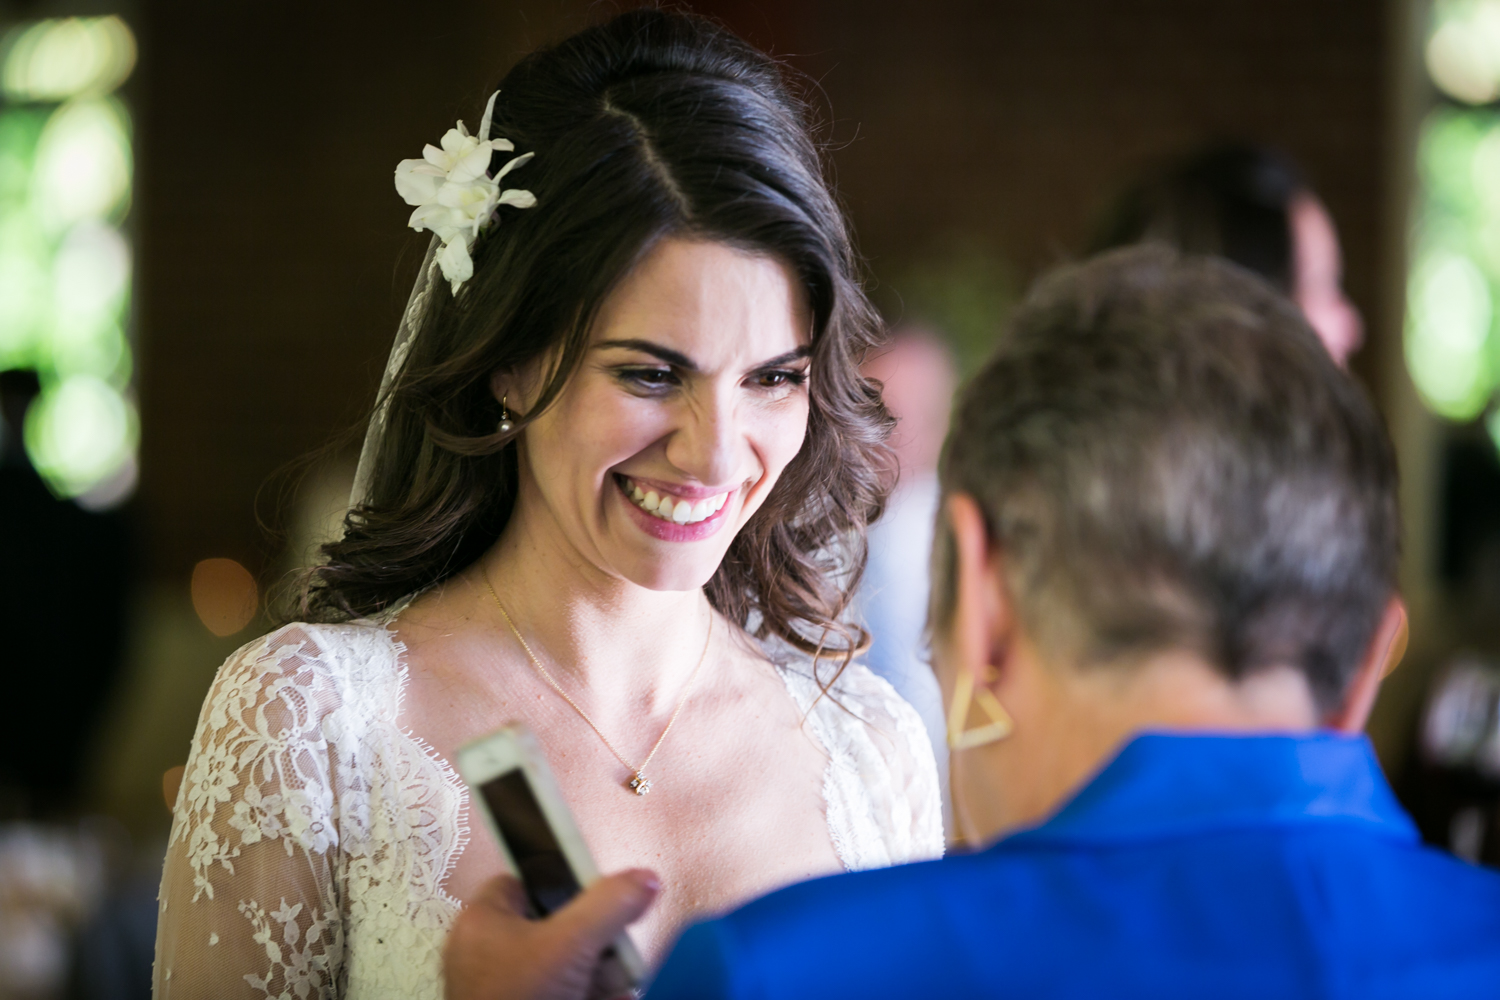 Bride smiling at guest at a Loeb Boathouse wedding in Central Park